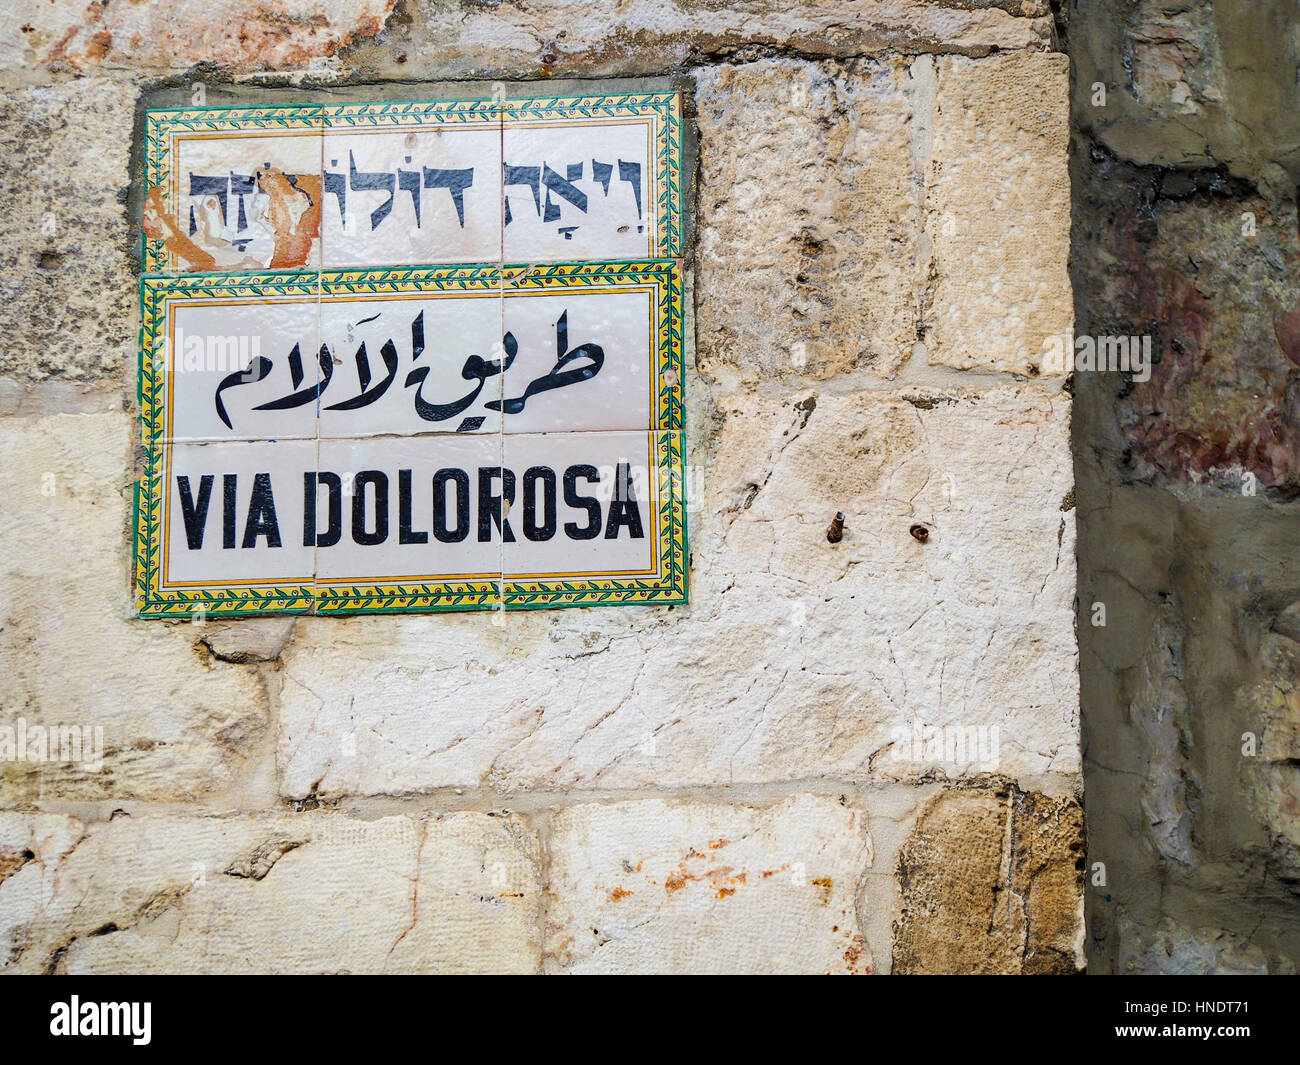 Jerusalem Stein Fliesen Via Dolorosa Sign Stockfotos And Via Dolorosa Sign Bilder